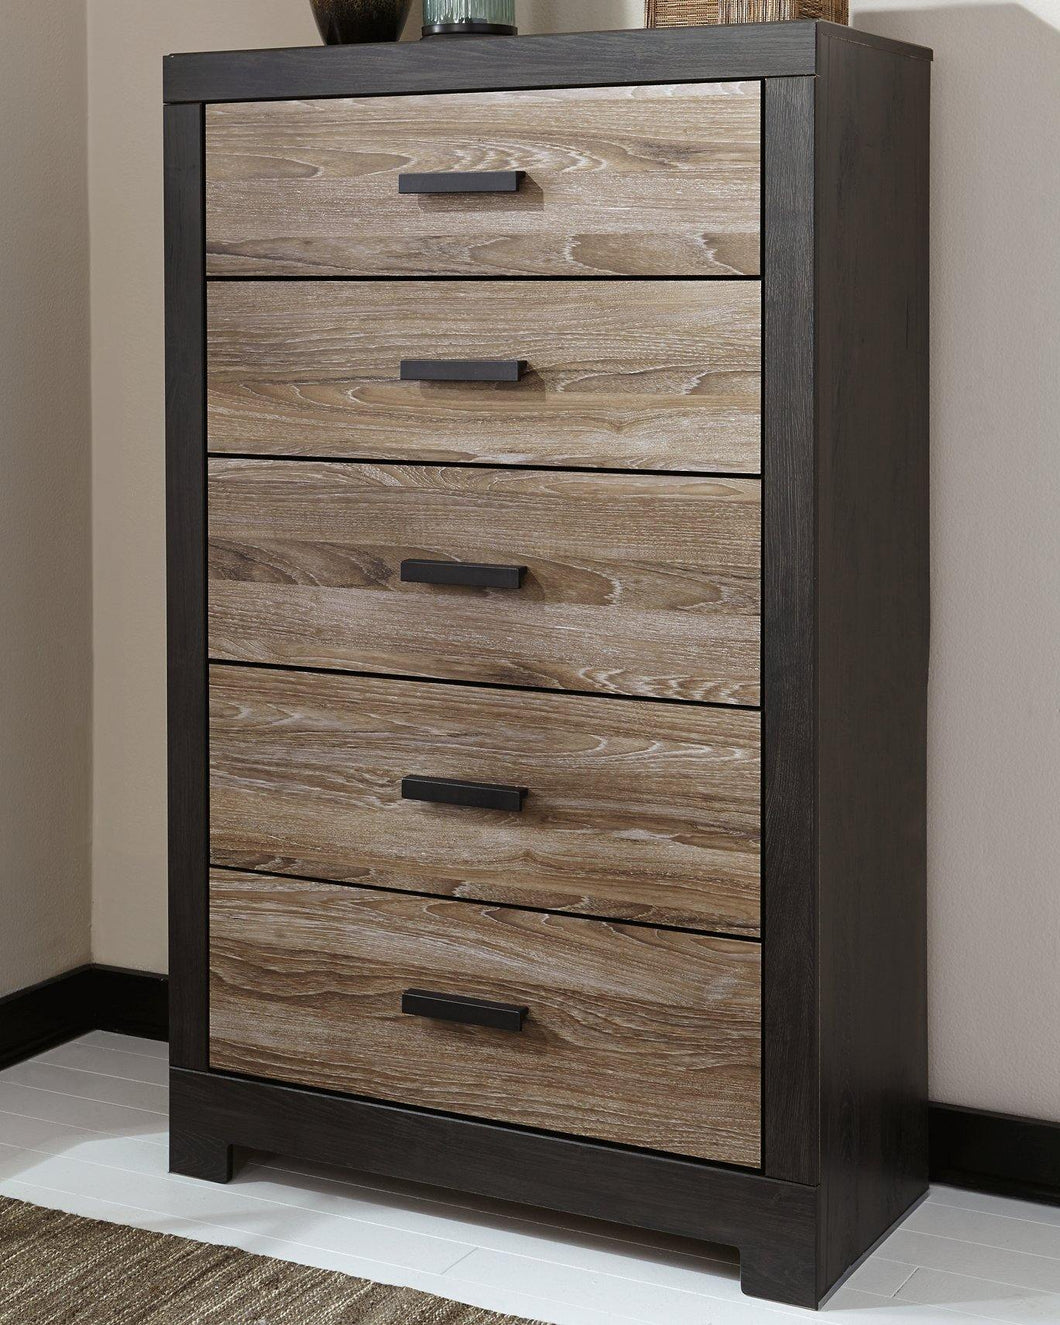 Harlinton Chest of Drawers B325-46 By Ashley Furniture from sofafair